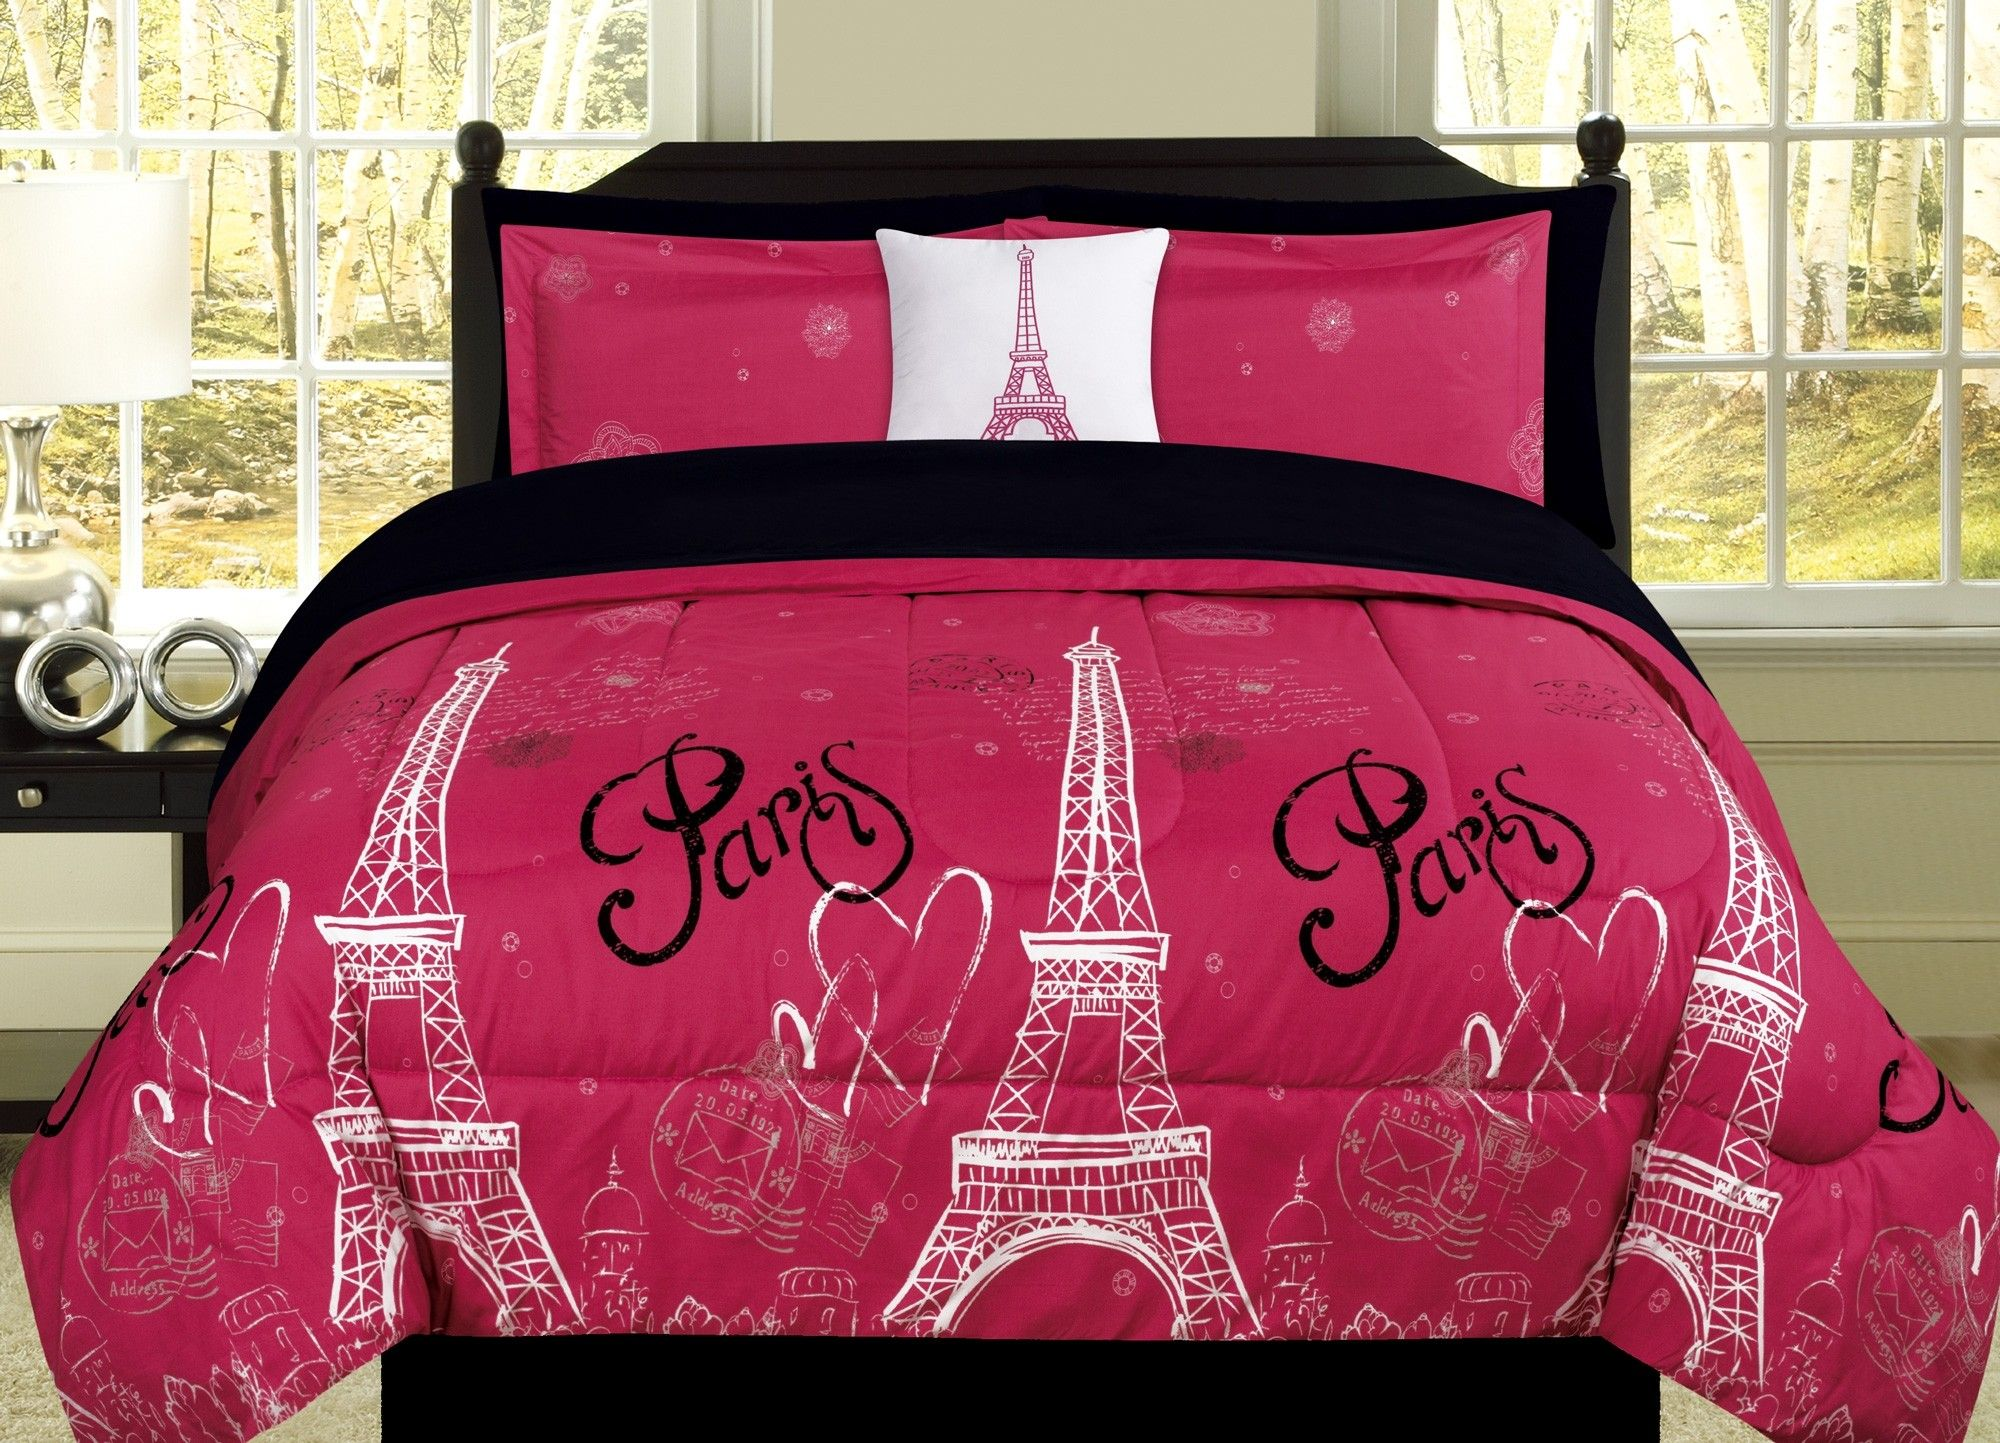 Beatrice Paris Love Twin forter Pink Black Eiffel Tower Bedding